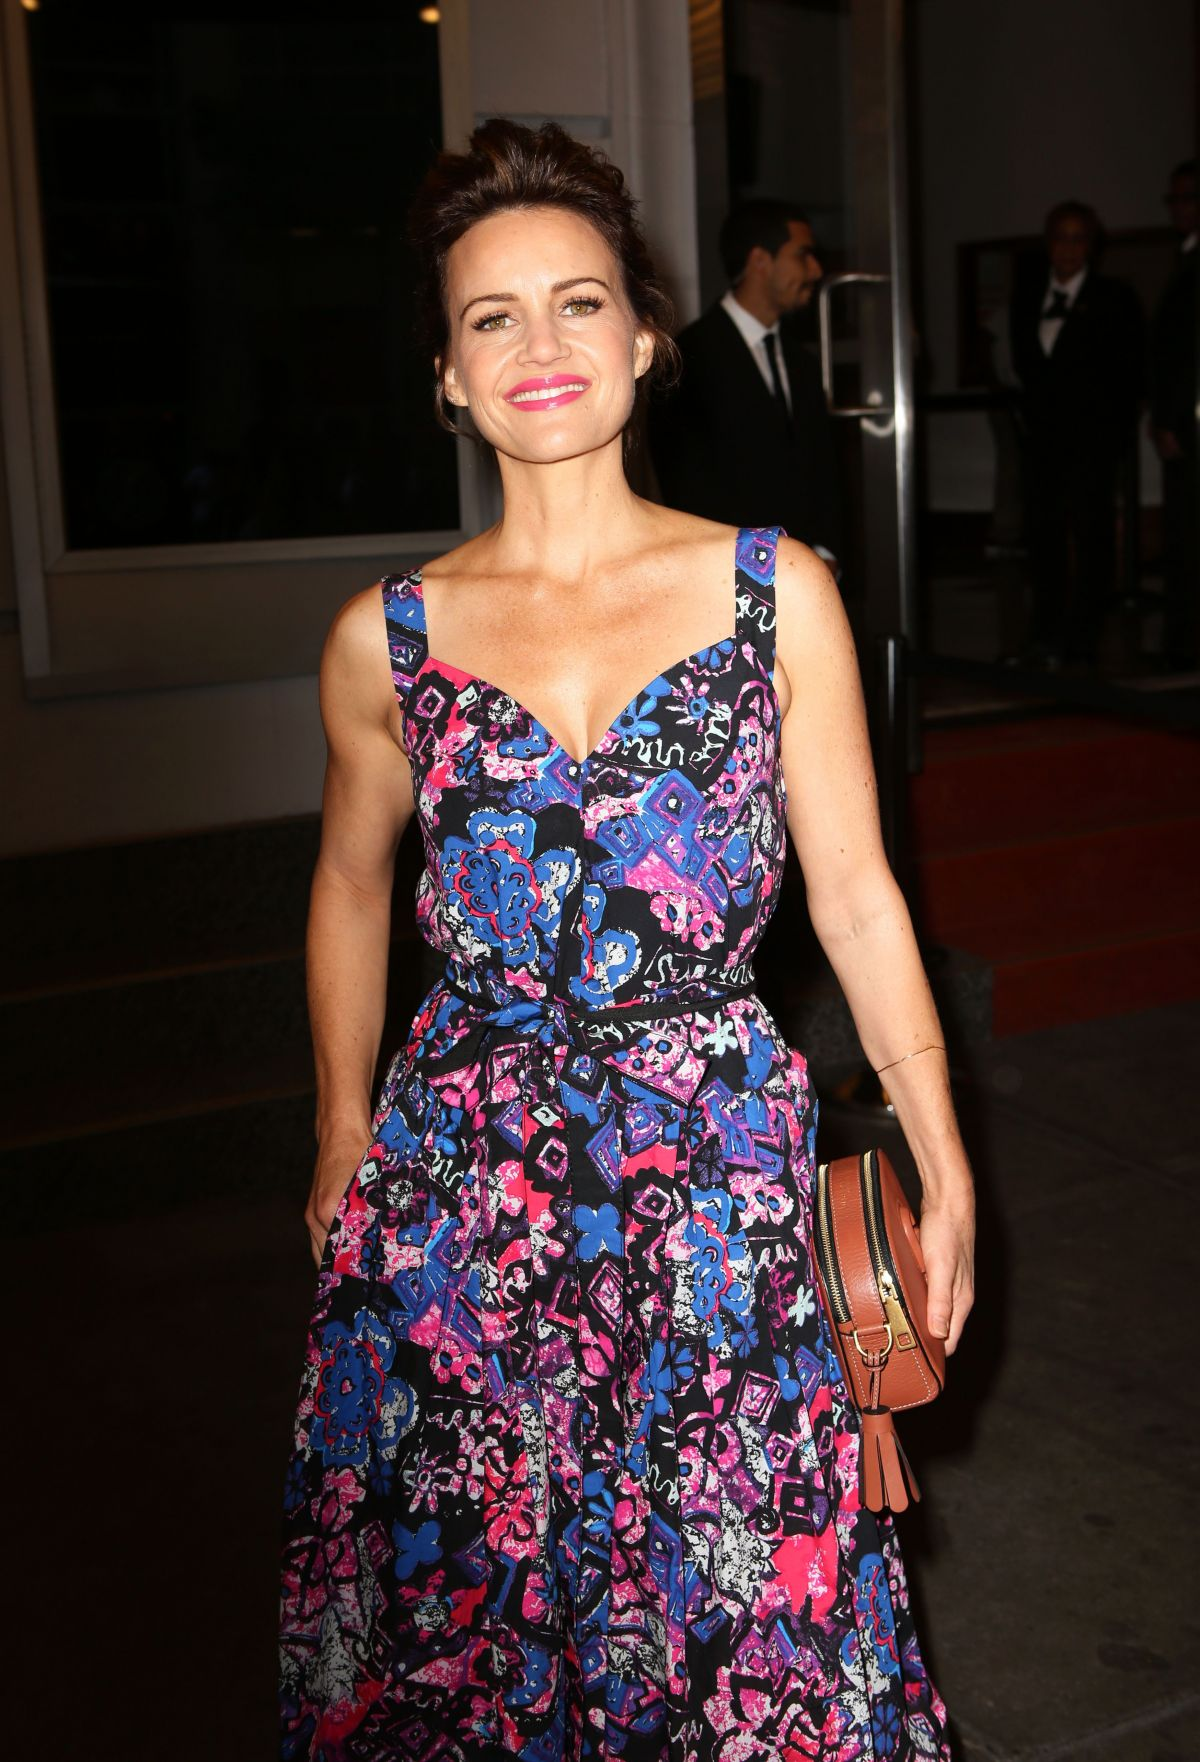 CARLA GUGINO at Marc Jacobs Fashion Show at New York Fashion Week 09/15/2016